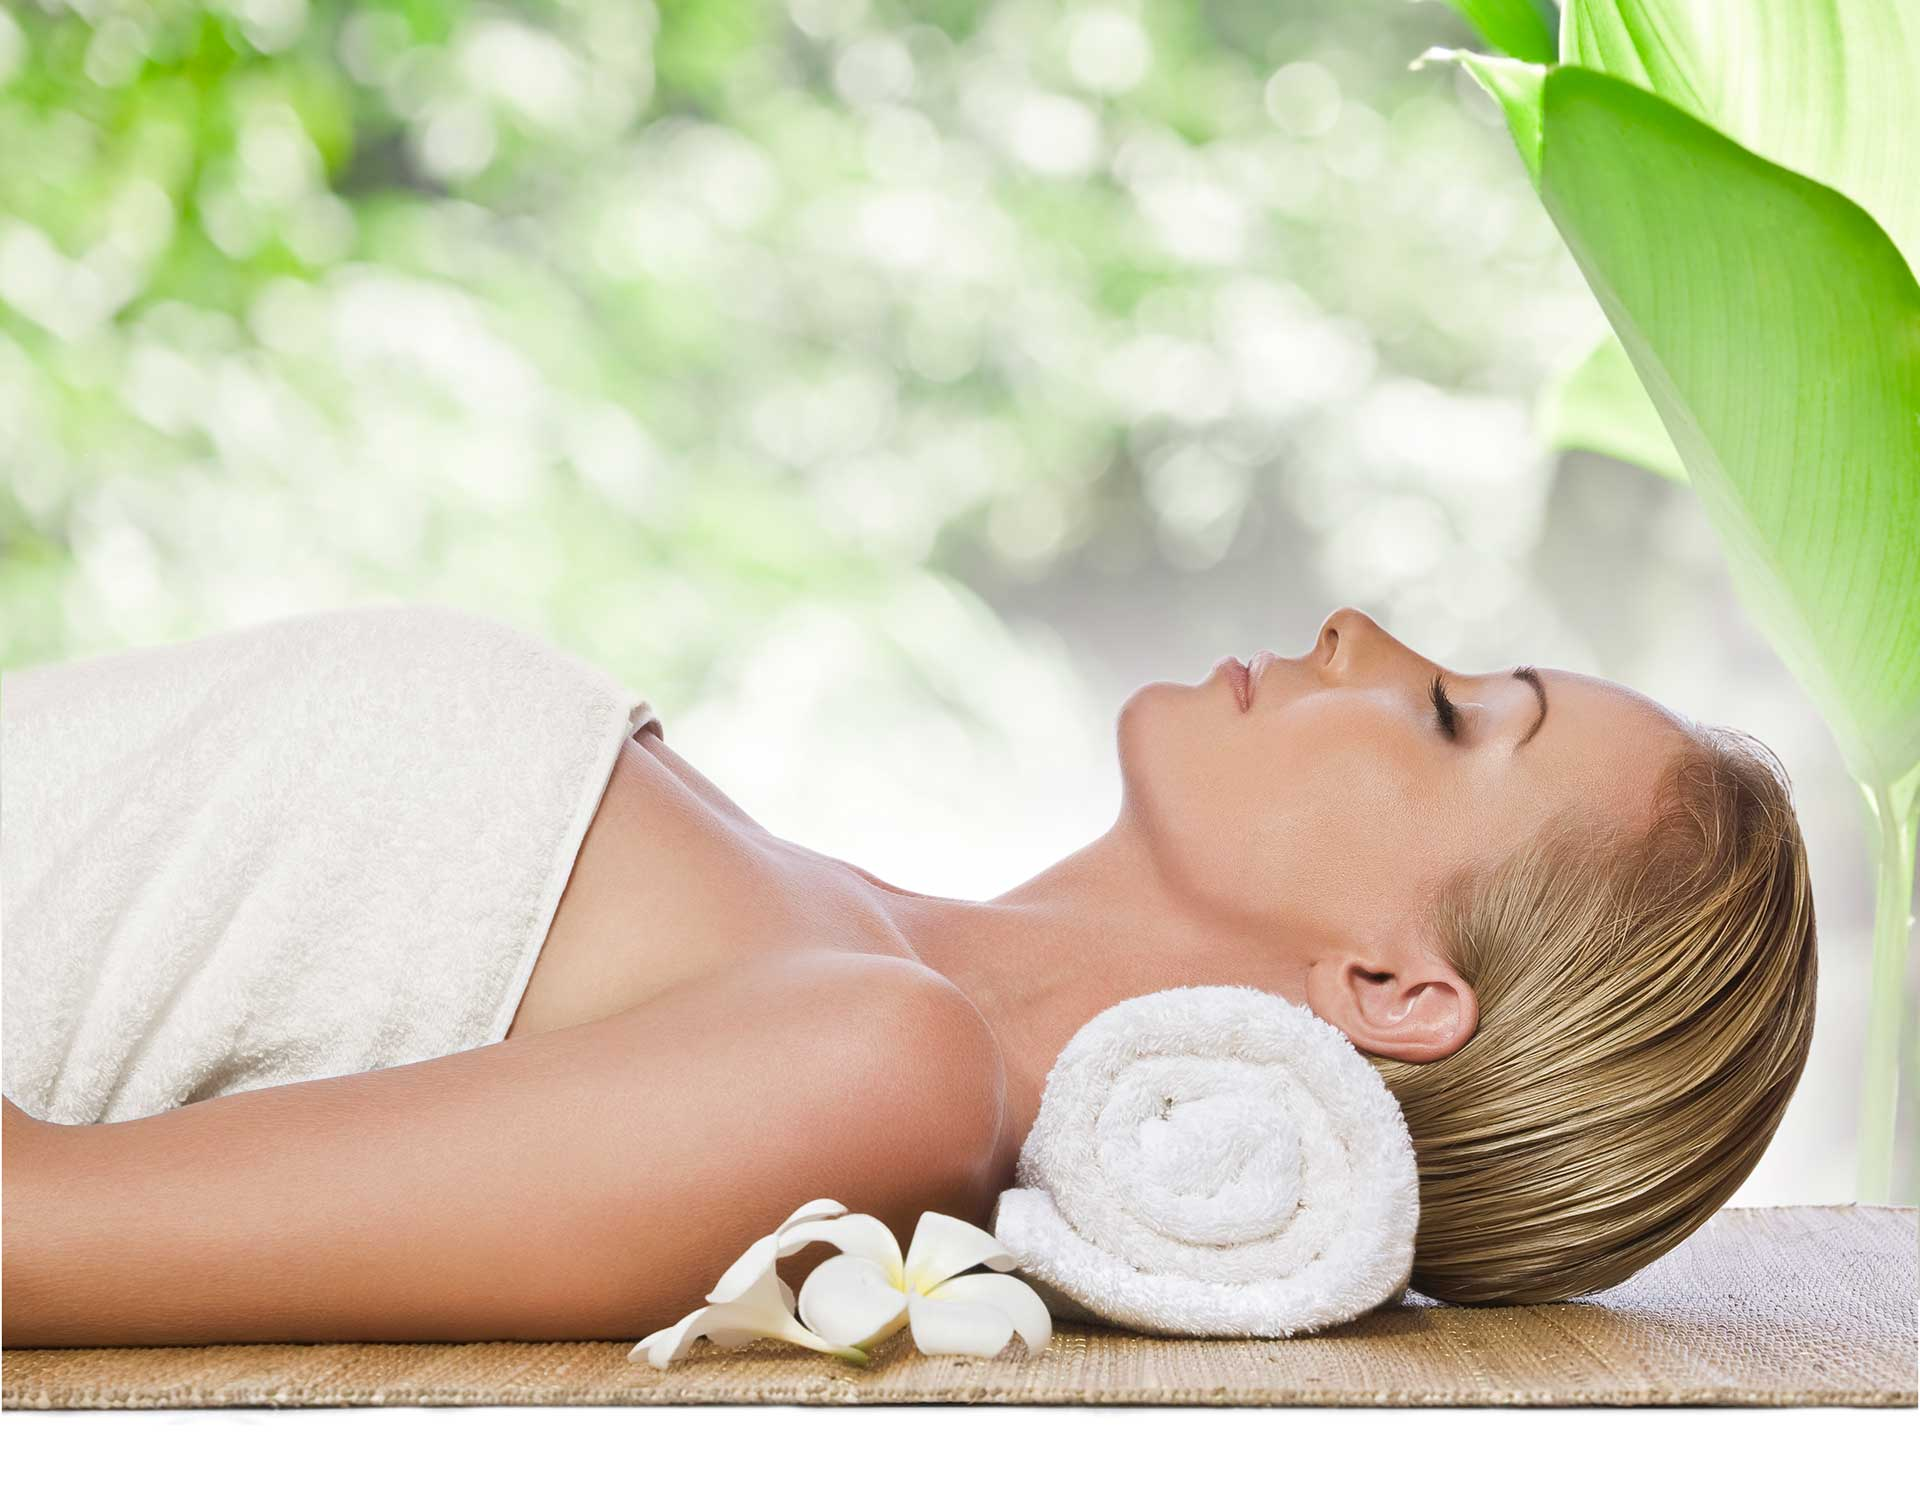 Acupuncture relief lady at spa